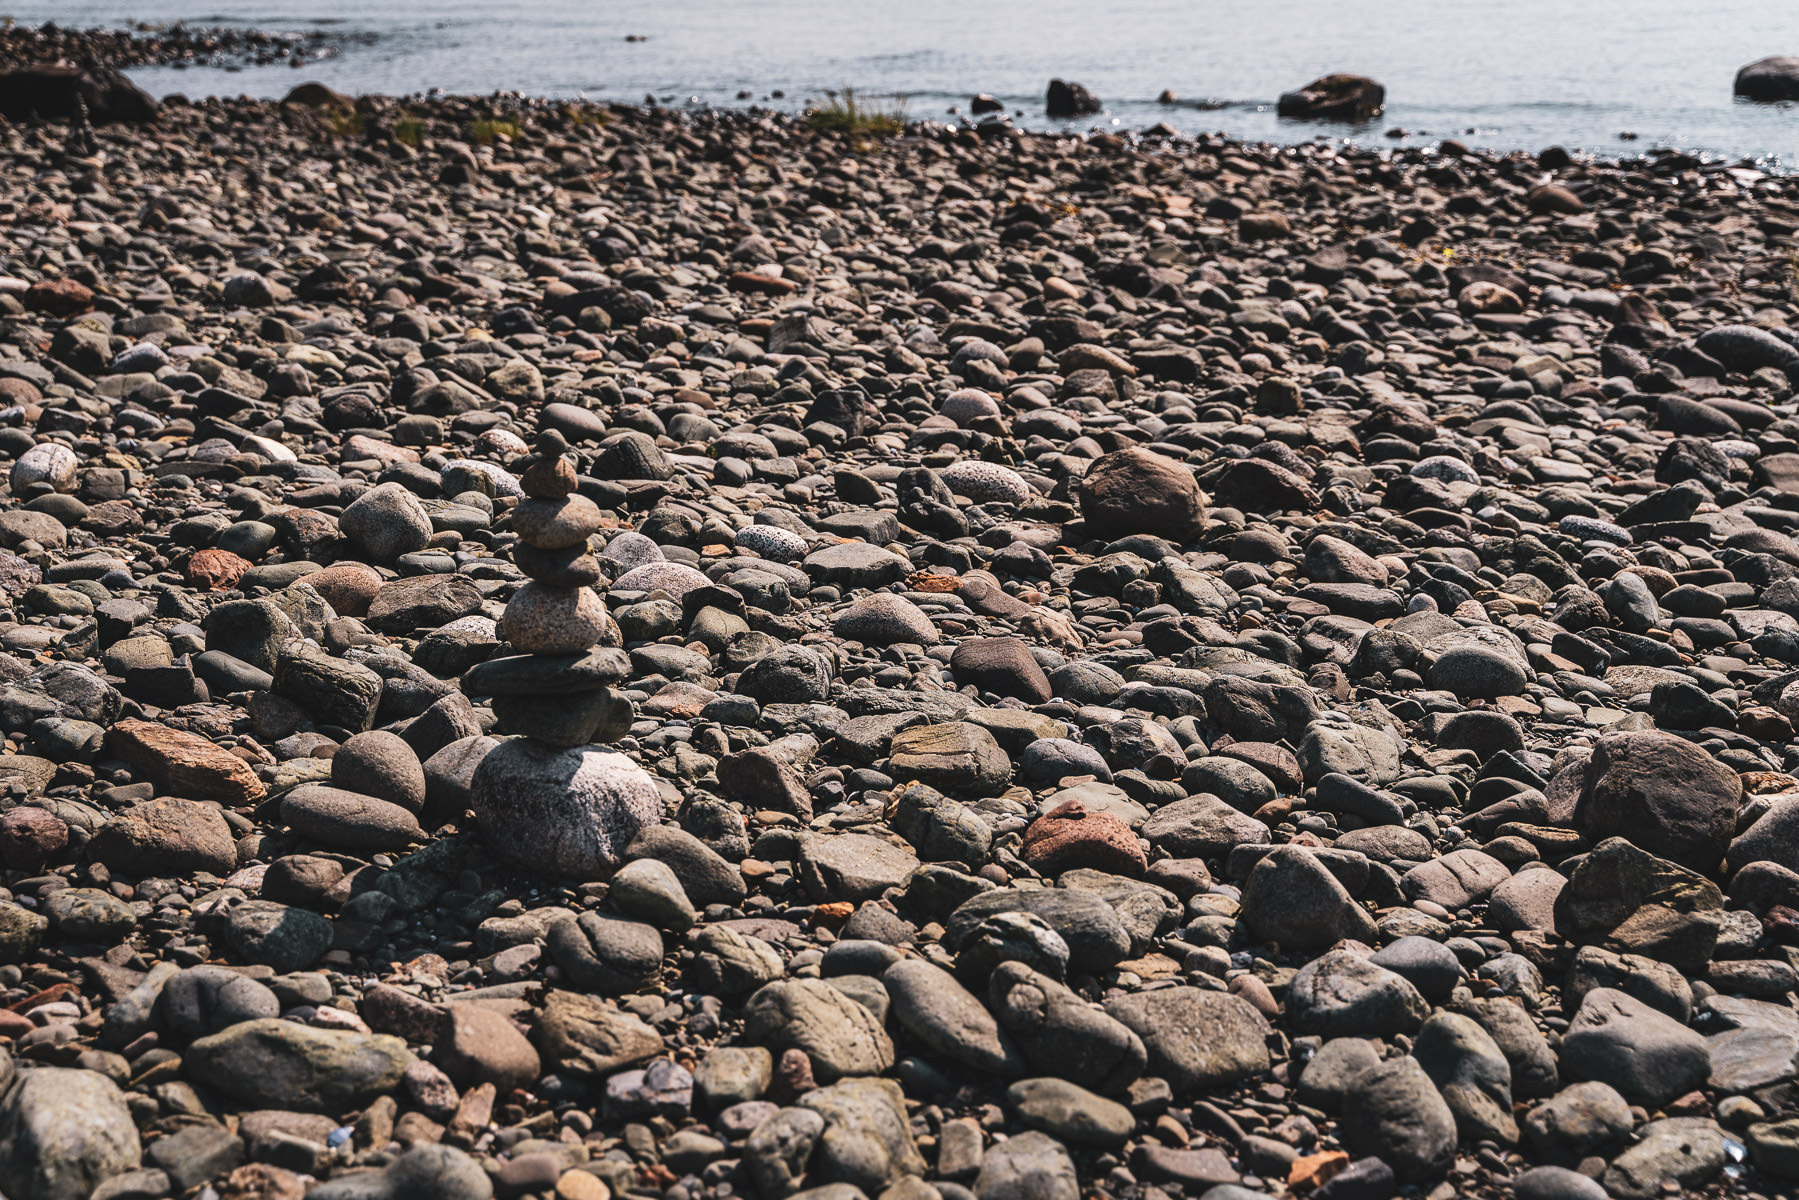 Stones stacked on a rocky shore in Juneau, Alaska.